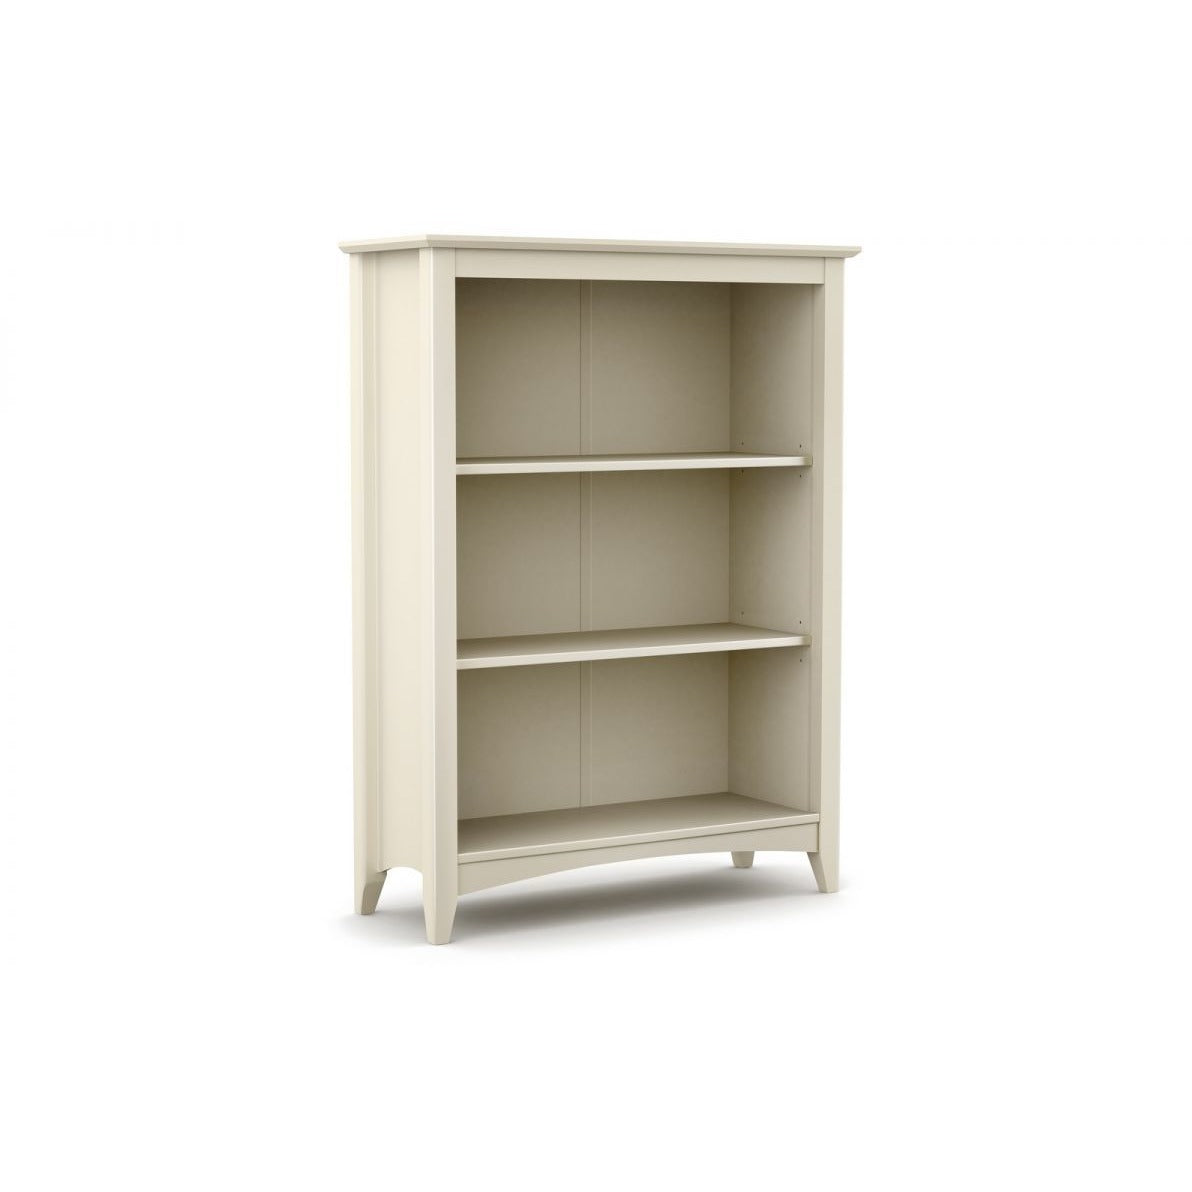 Cameo White Bookcase - Perfectly Home Interiors